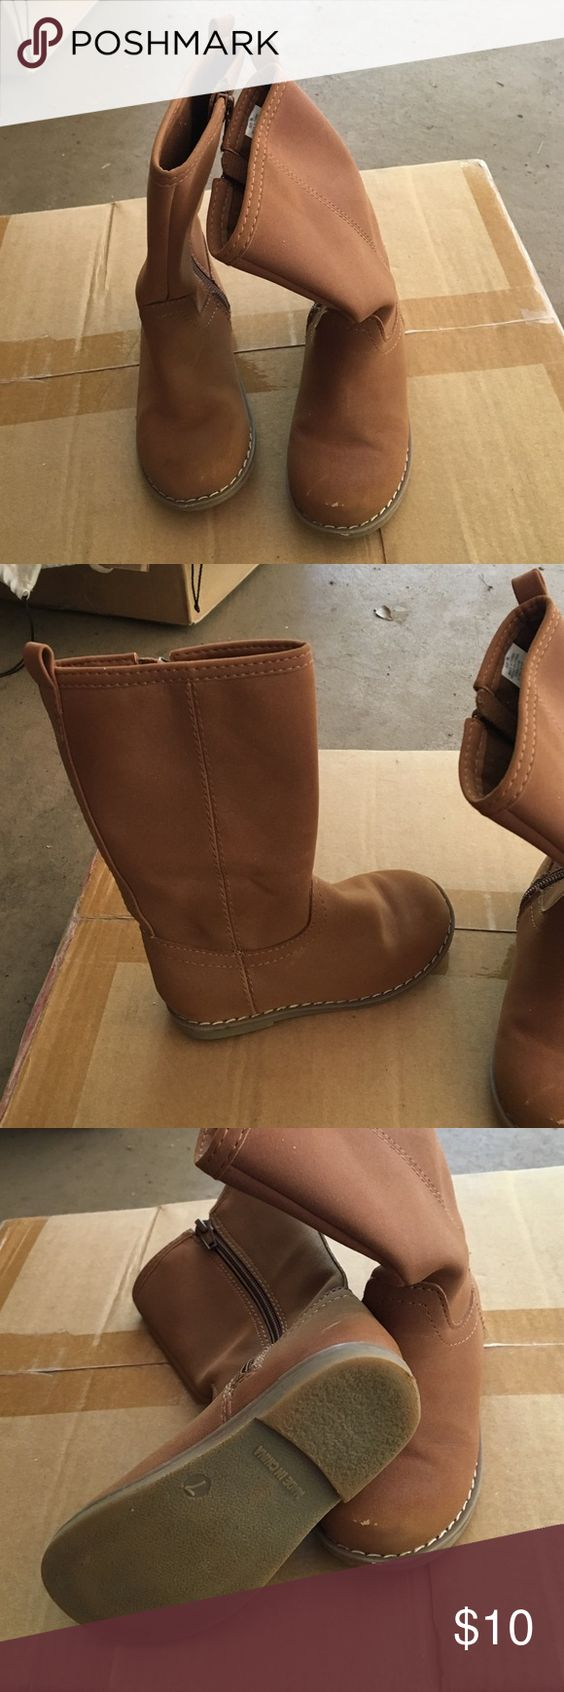 Girls Gap boots Side zip with slight wear on toes. Toddler size 7. Gap Shoes Winter & Rain Boots